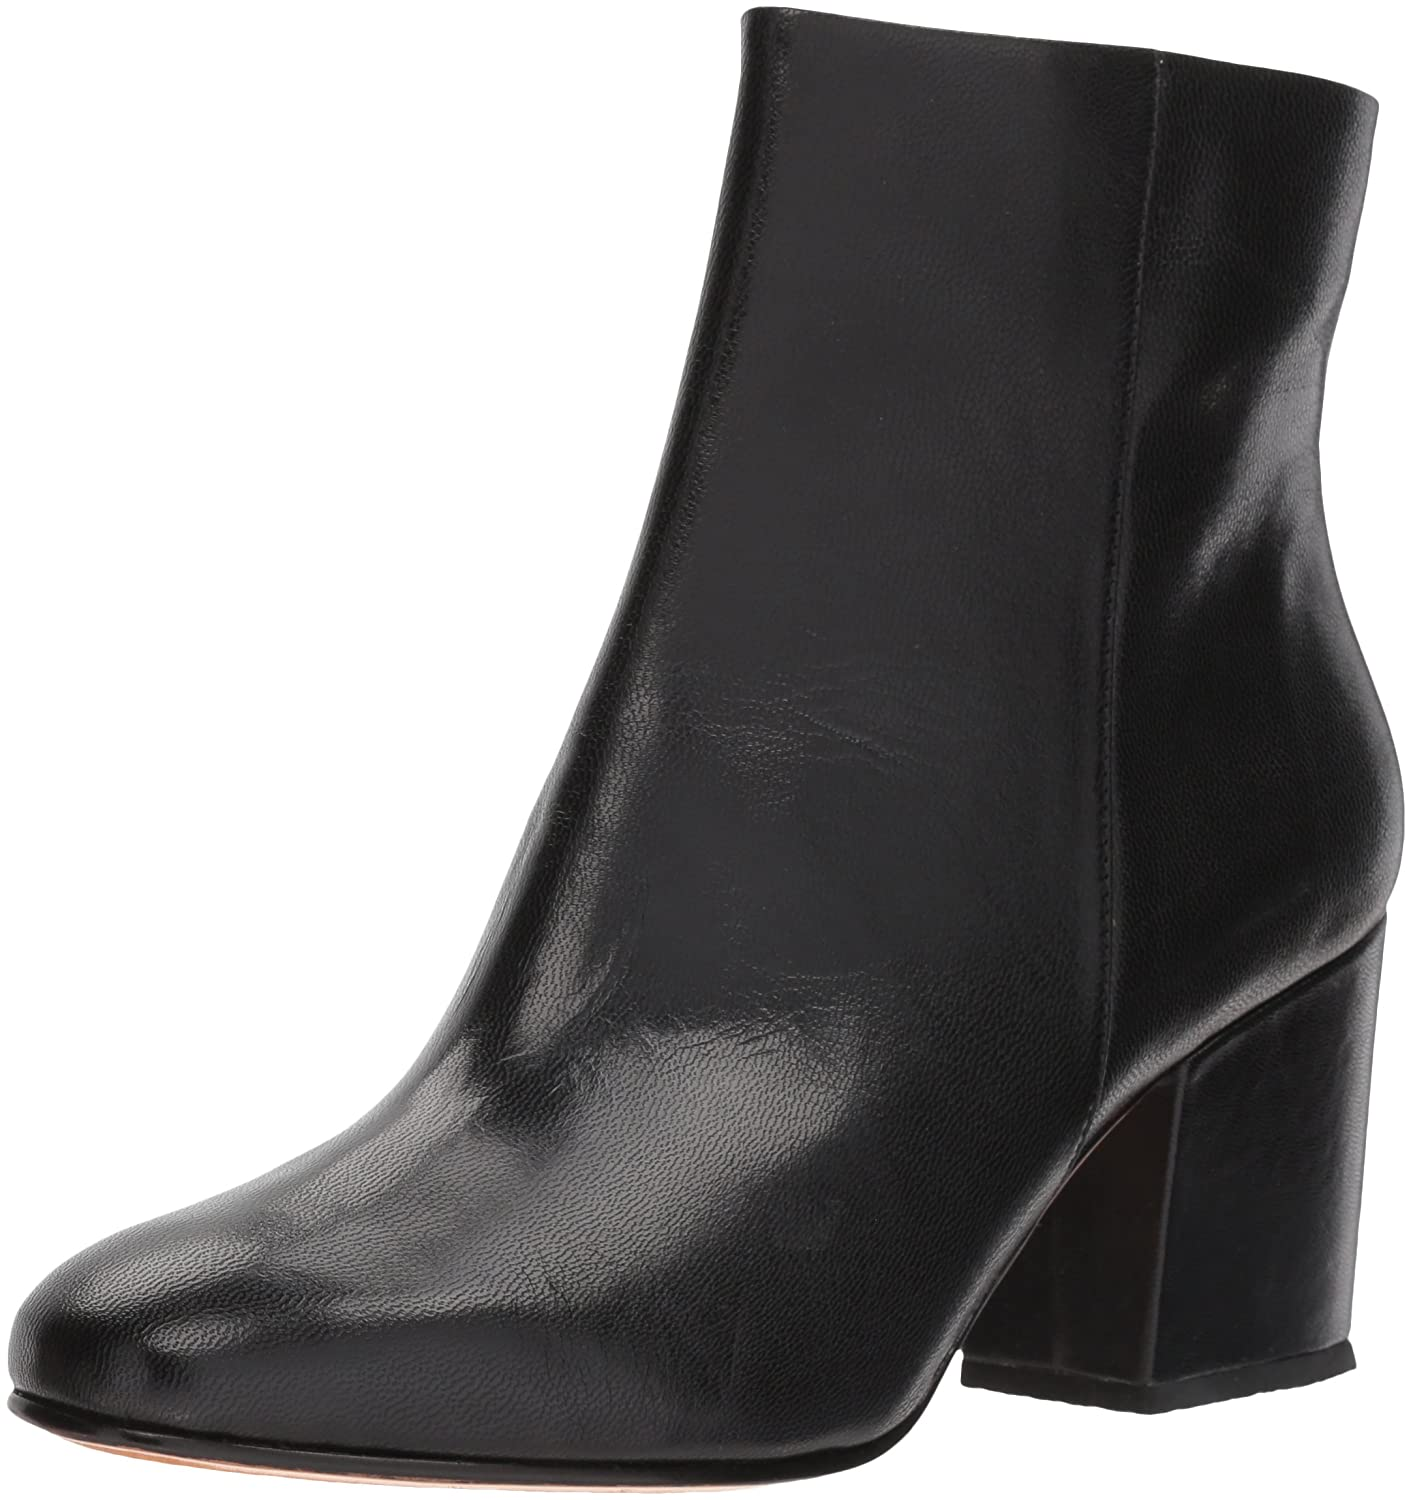 Rachel Comey Women's Fete Ankle Boot B077782G9R 9.5 B(M) US|Black